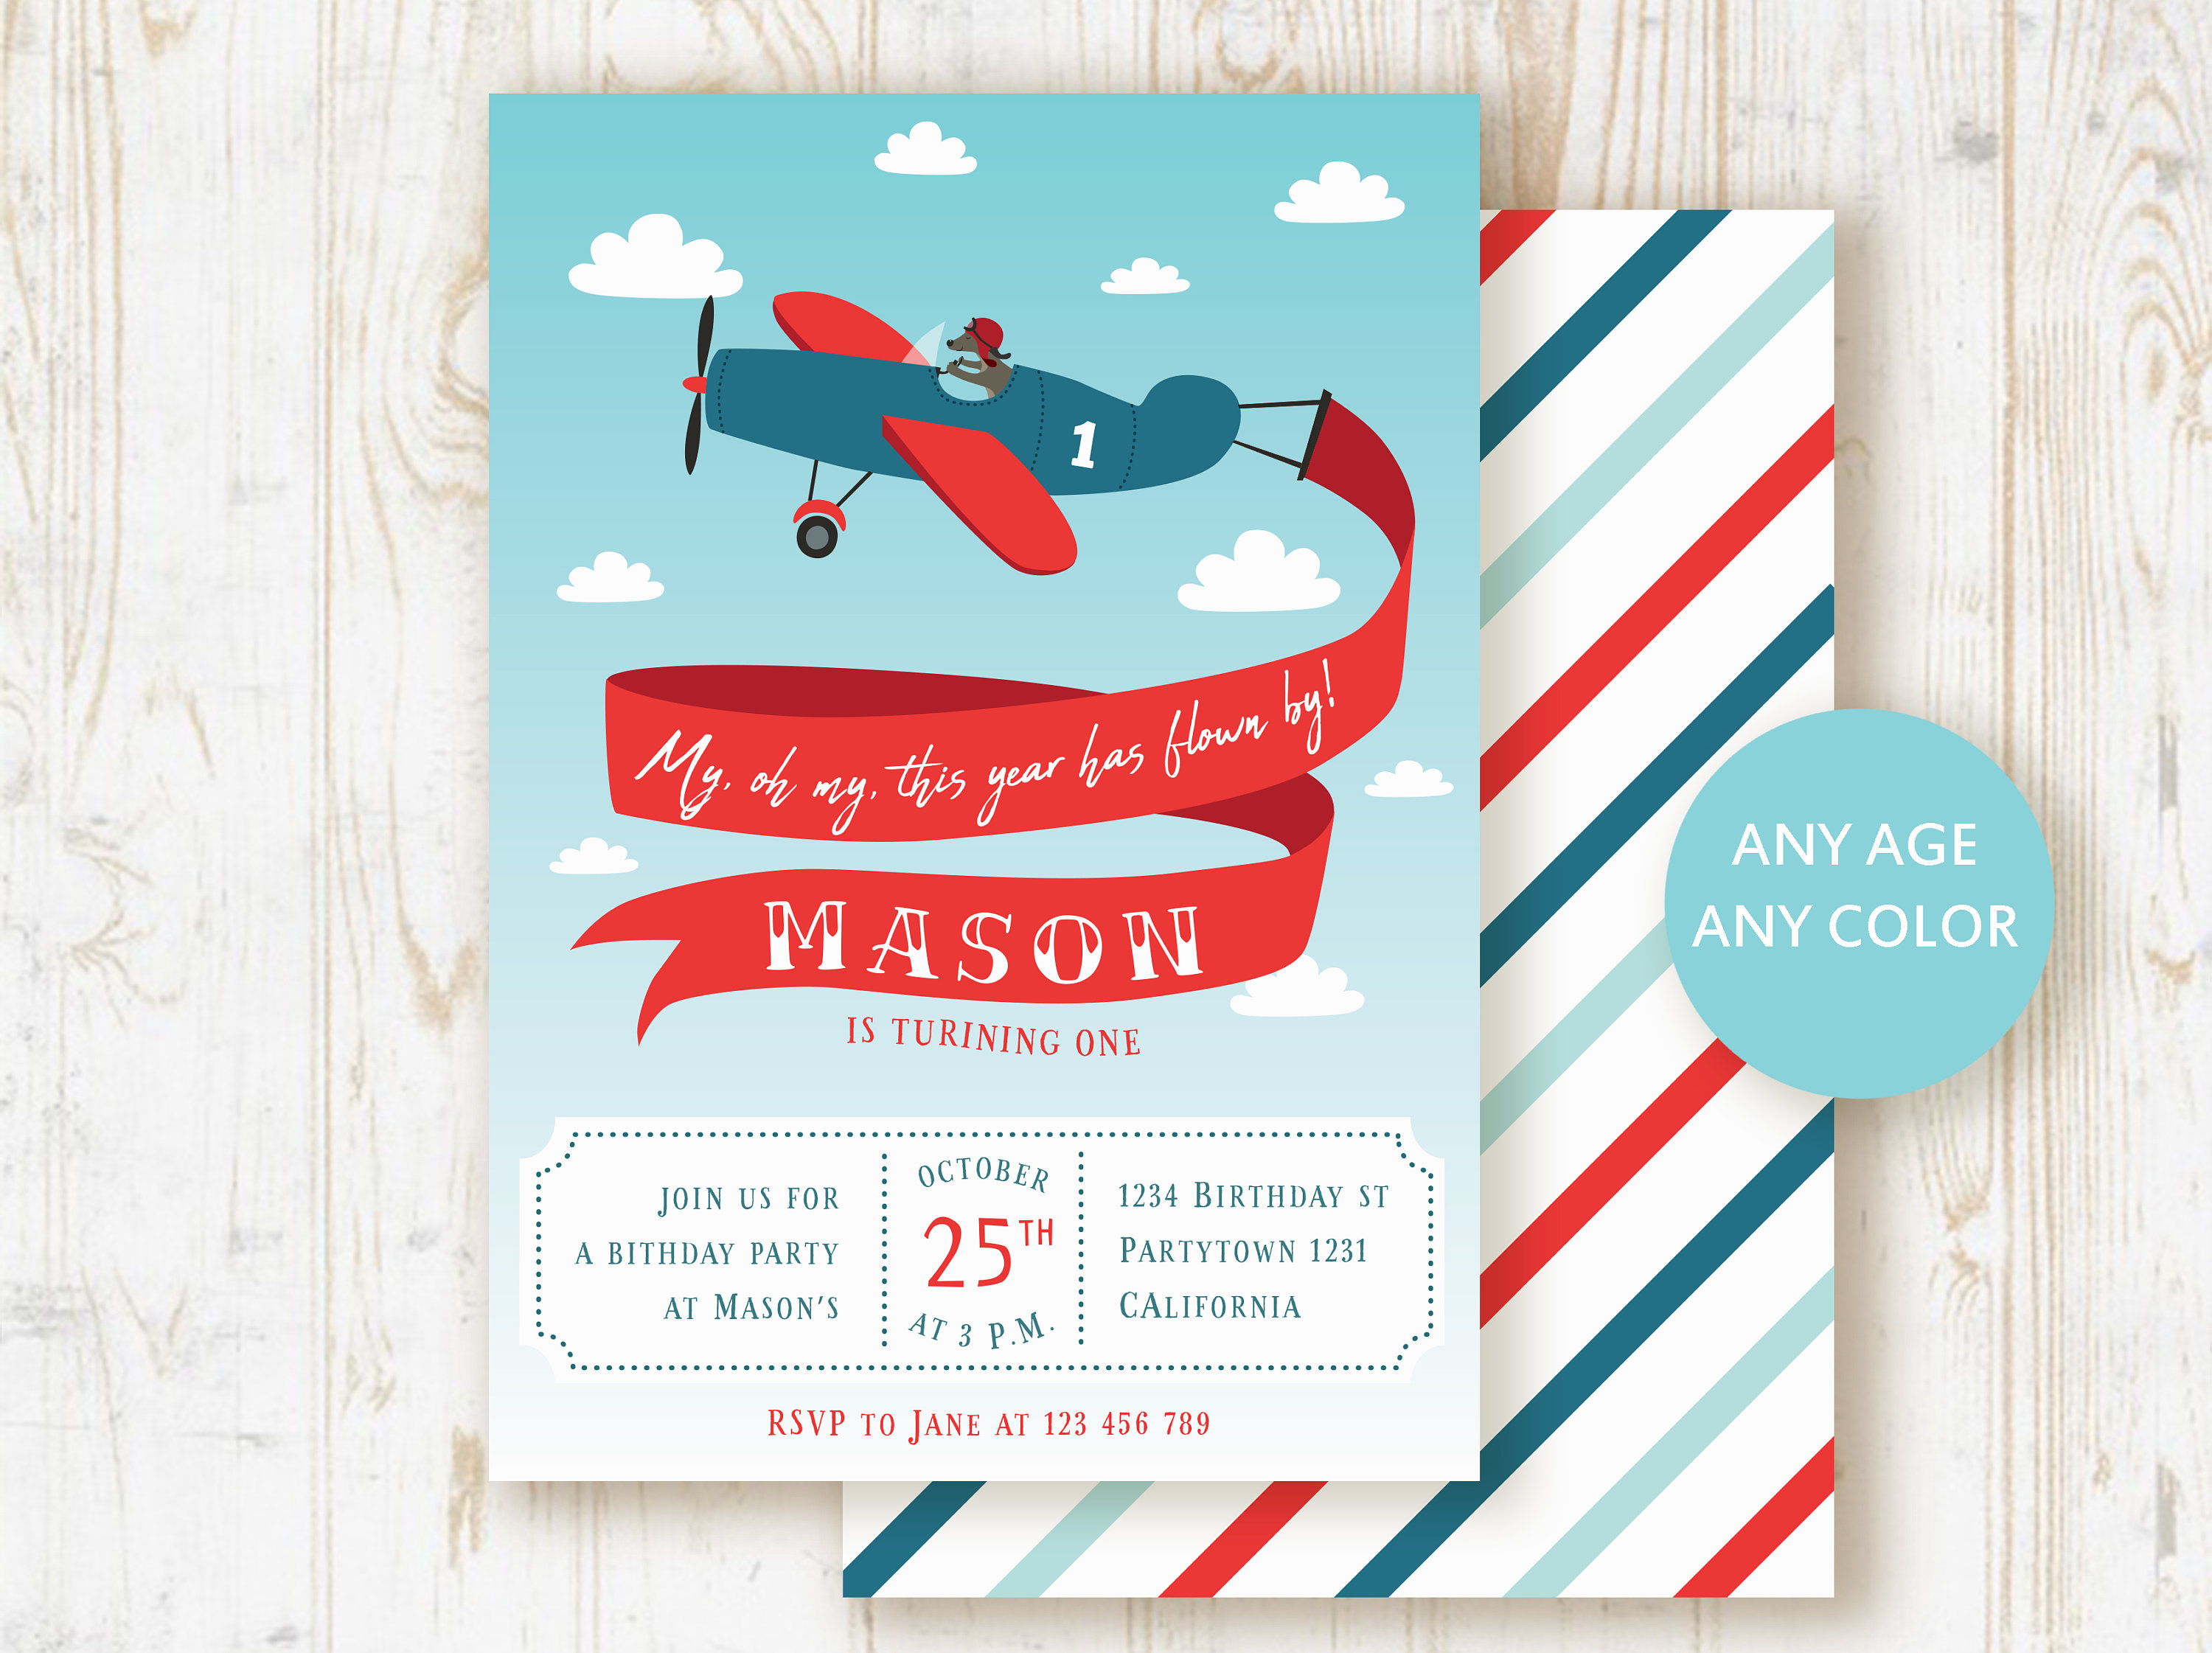 Airplane birthday invitation Airplane invitation Time flies | Etsy